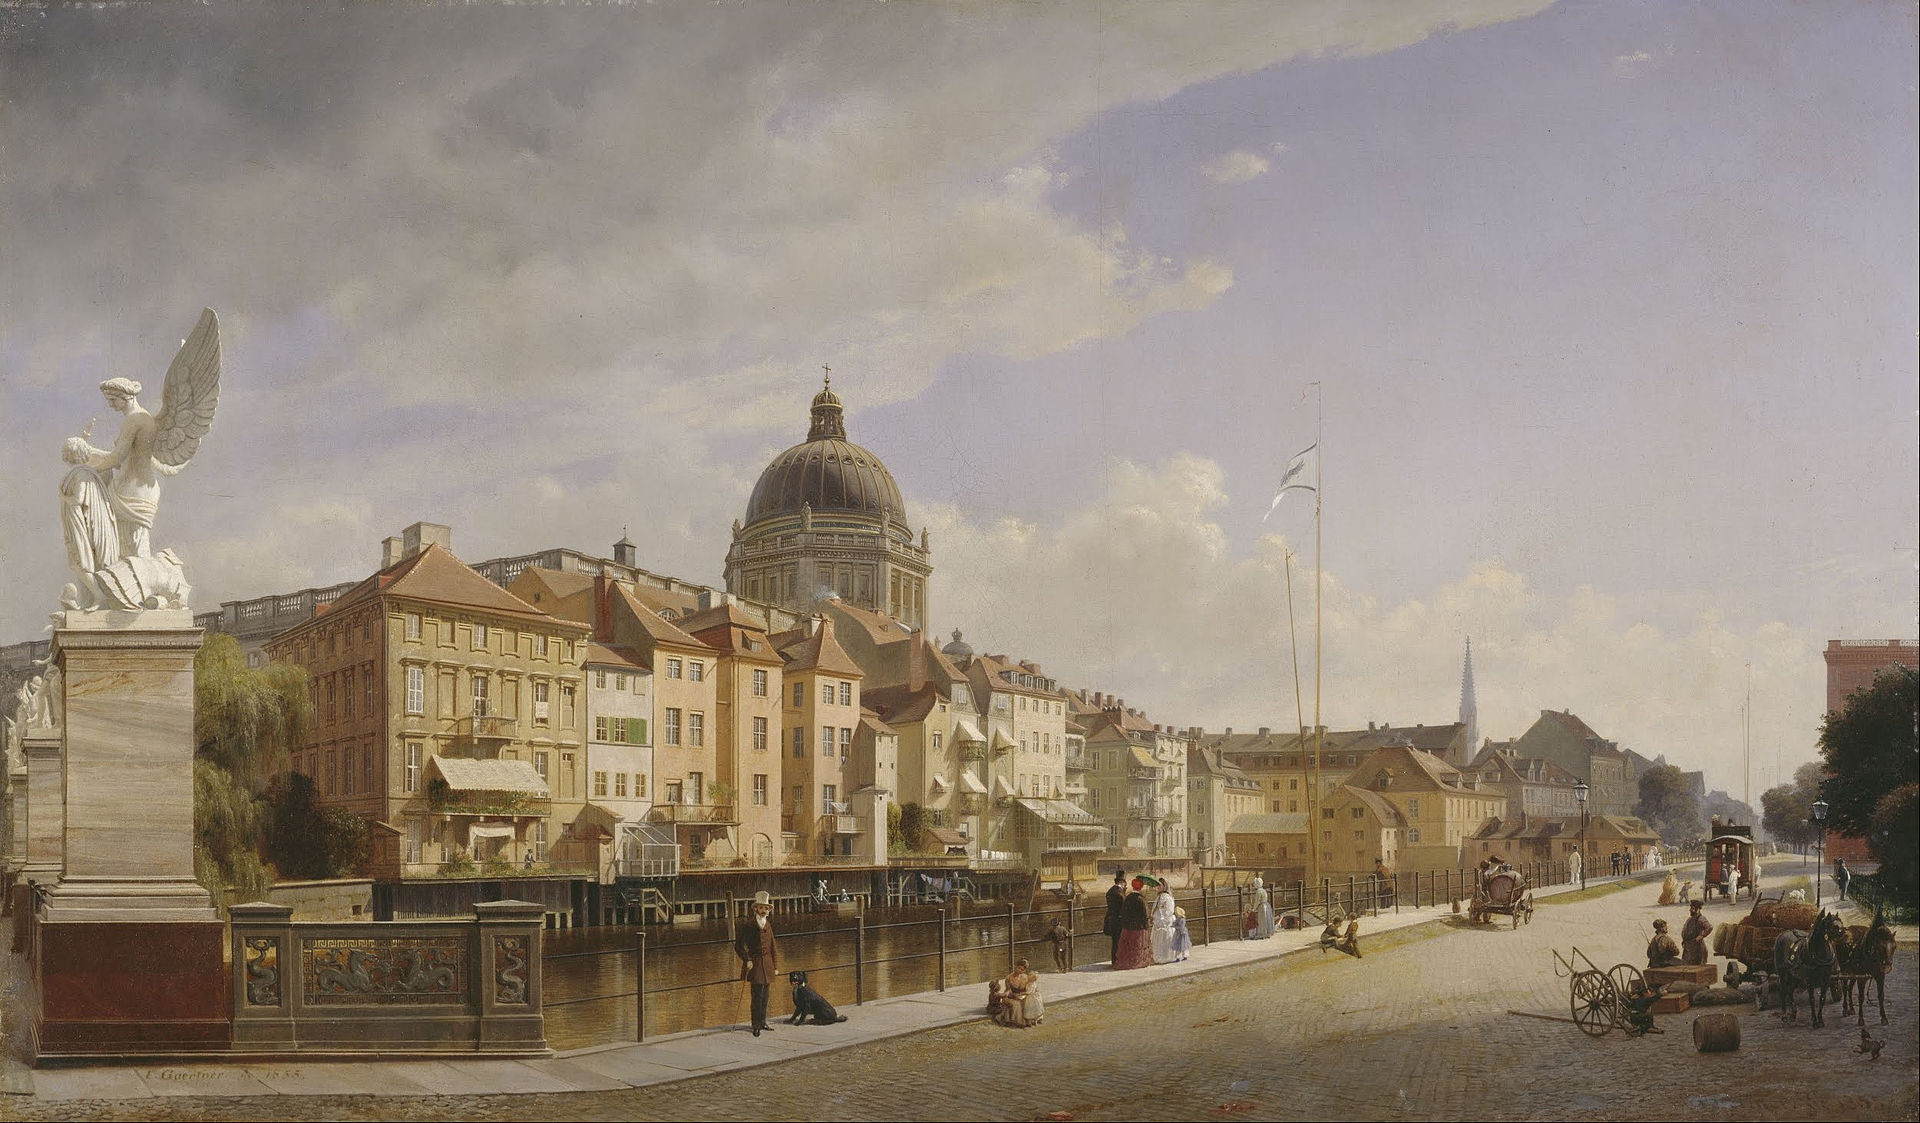 Eduard_Gaertner_-_Rear_view_of_the_Houses_at_Schloßfreiheit_-_Google_Art_Project.jpg